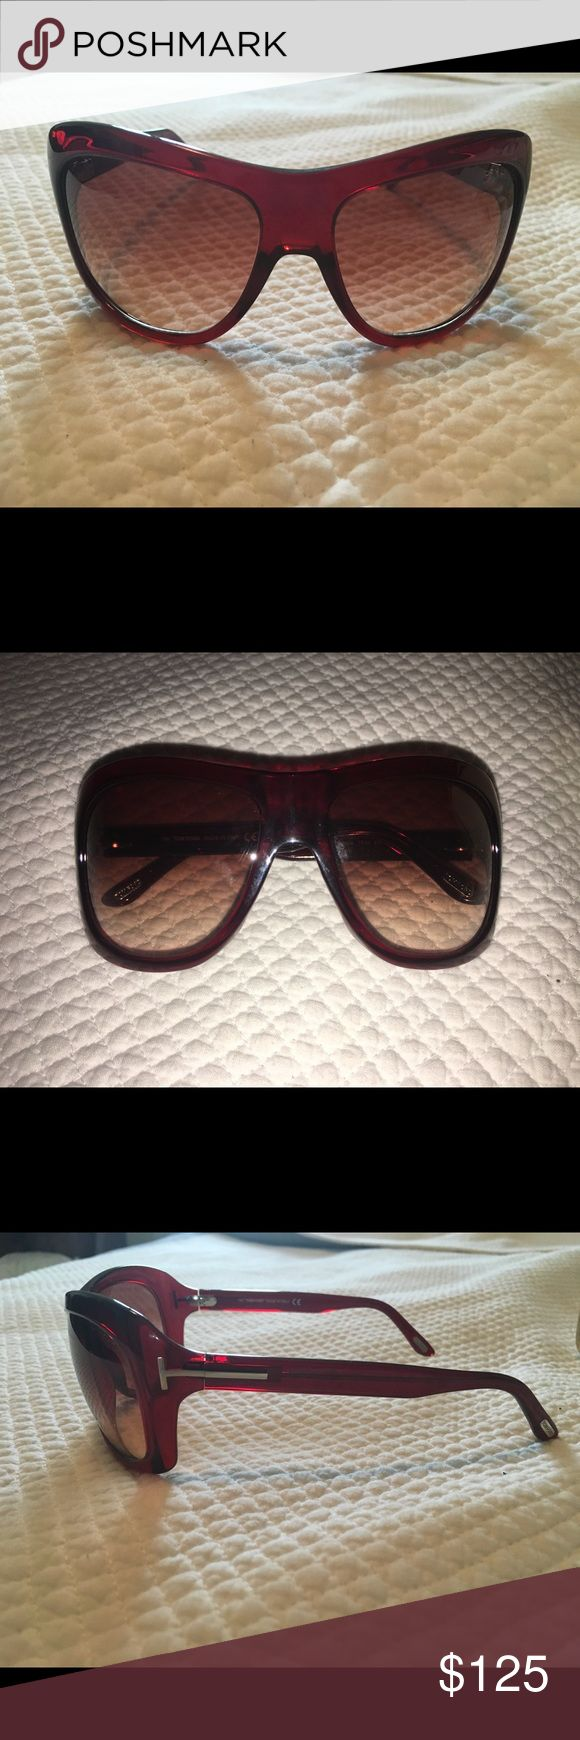 Tom Ford Women's Sunglasses New, beautiful condition Tom Ford sunglasses. Flattering shape and very comfortable to wear. Complete package with cleaning cloth and case. Tom Ford Accessories Sunglasses